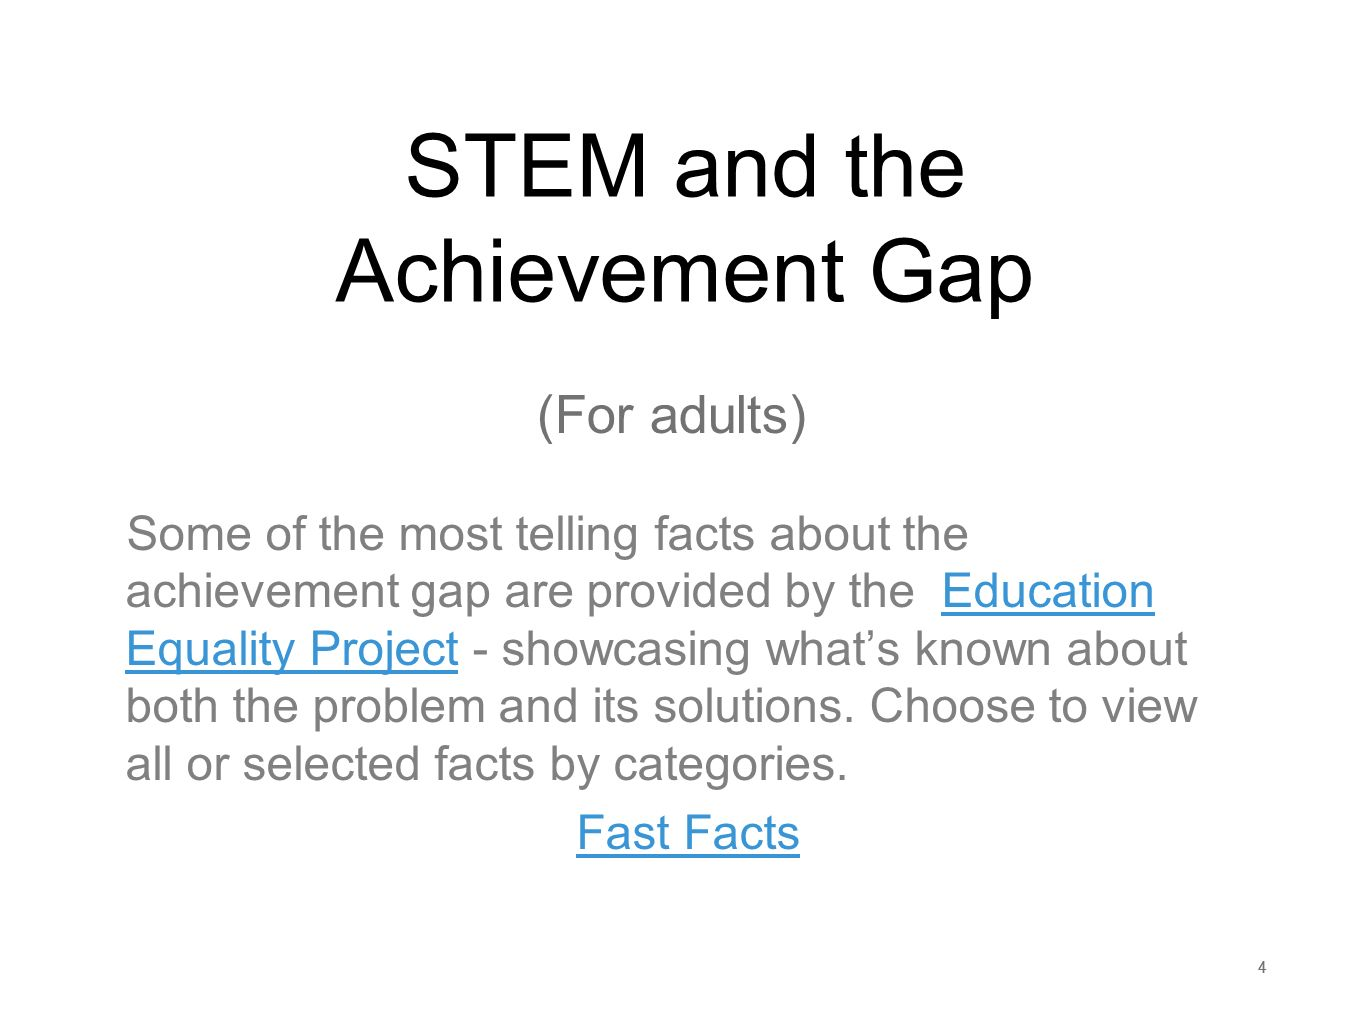 STEM and the Achievement Gap